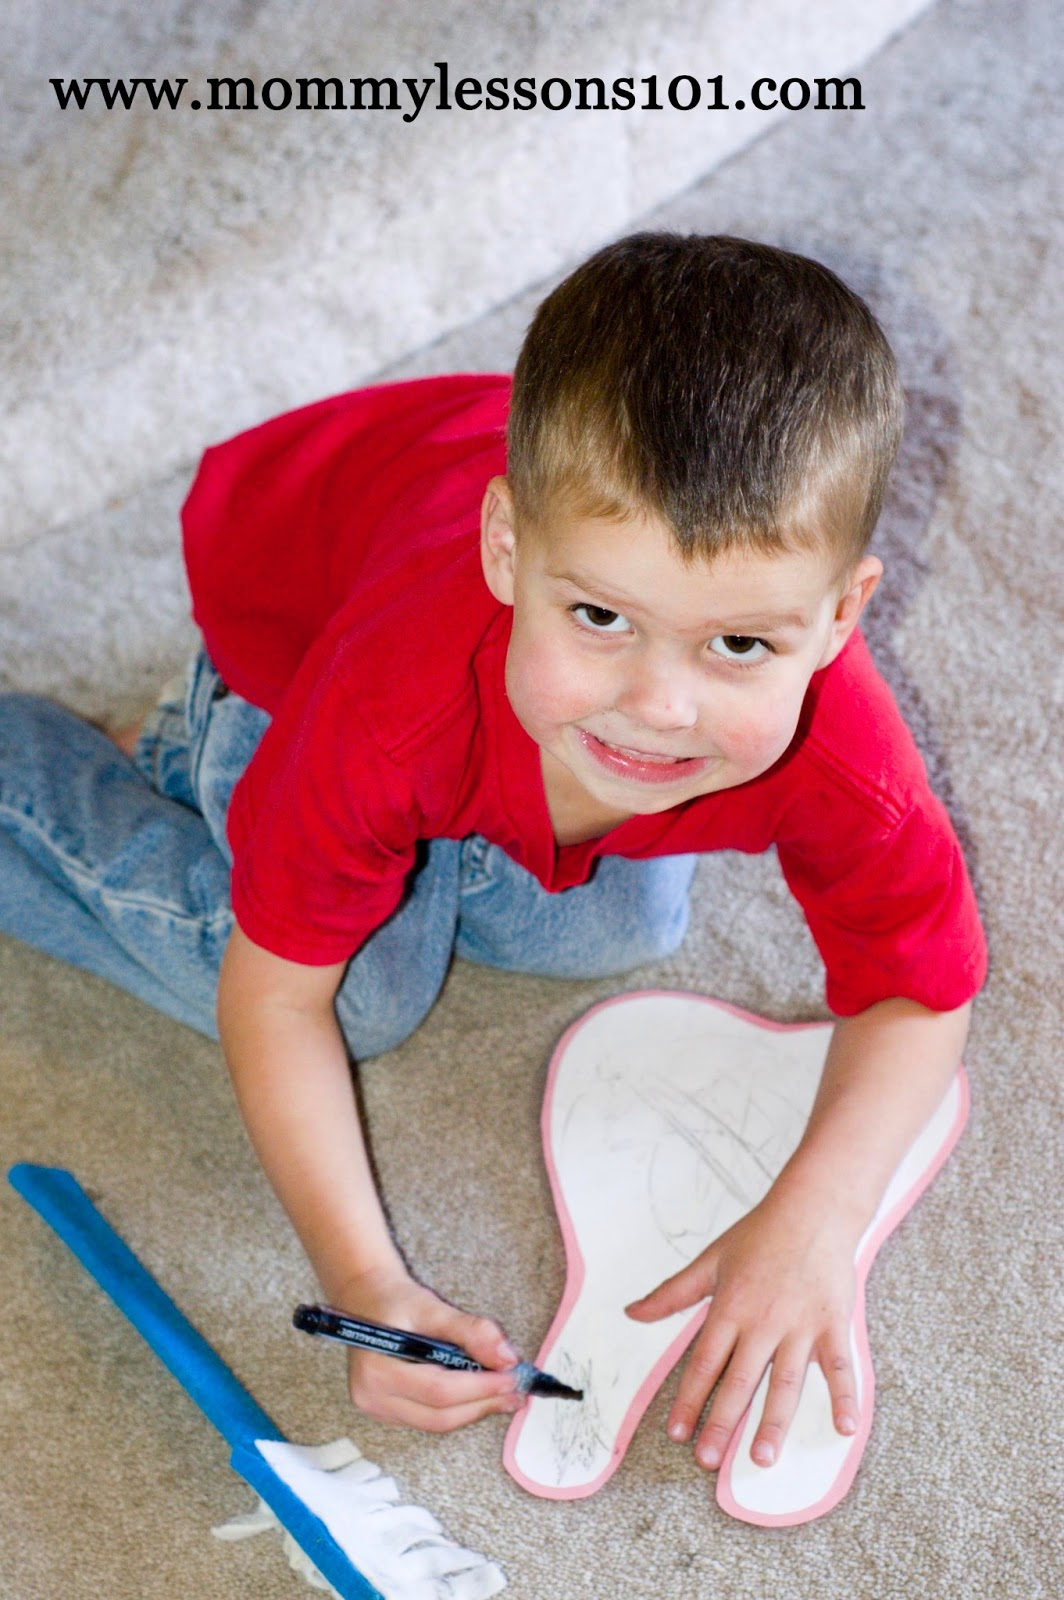 Mommy Lessons 101: Fun Activities for National Children's